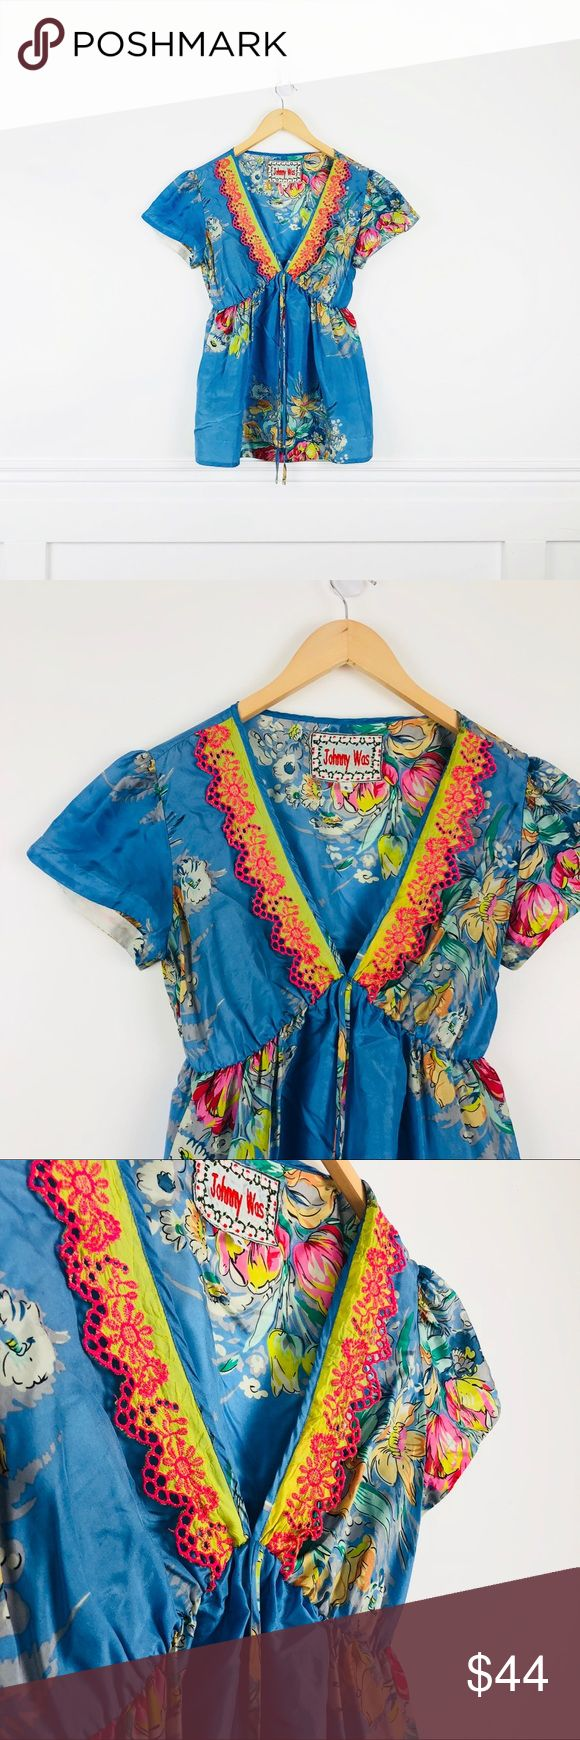 "Johnny Was silk blouse Johnny Was 100% silk empire silhouette blouse in blue floral print. Deep lime v-neckline with hot pink eyelet trim and drawstring bow. Size S. Chest 18"", length 25"".  In great used condition, last photo shows a stain on the left side of the neckline, by the shoulder seam. Johnny Was Tops"